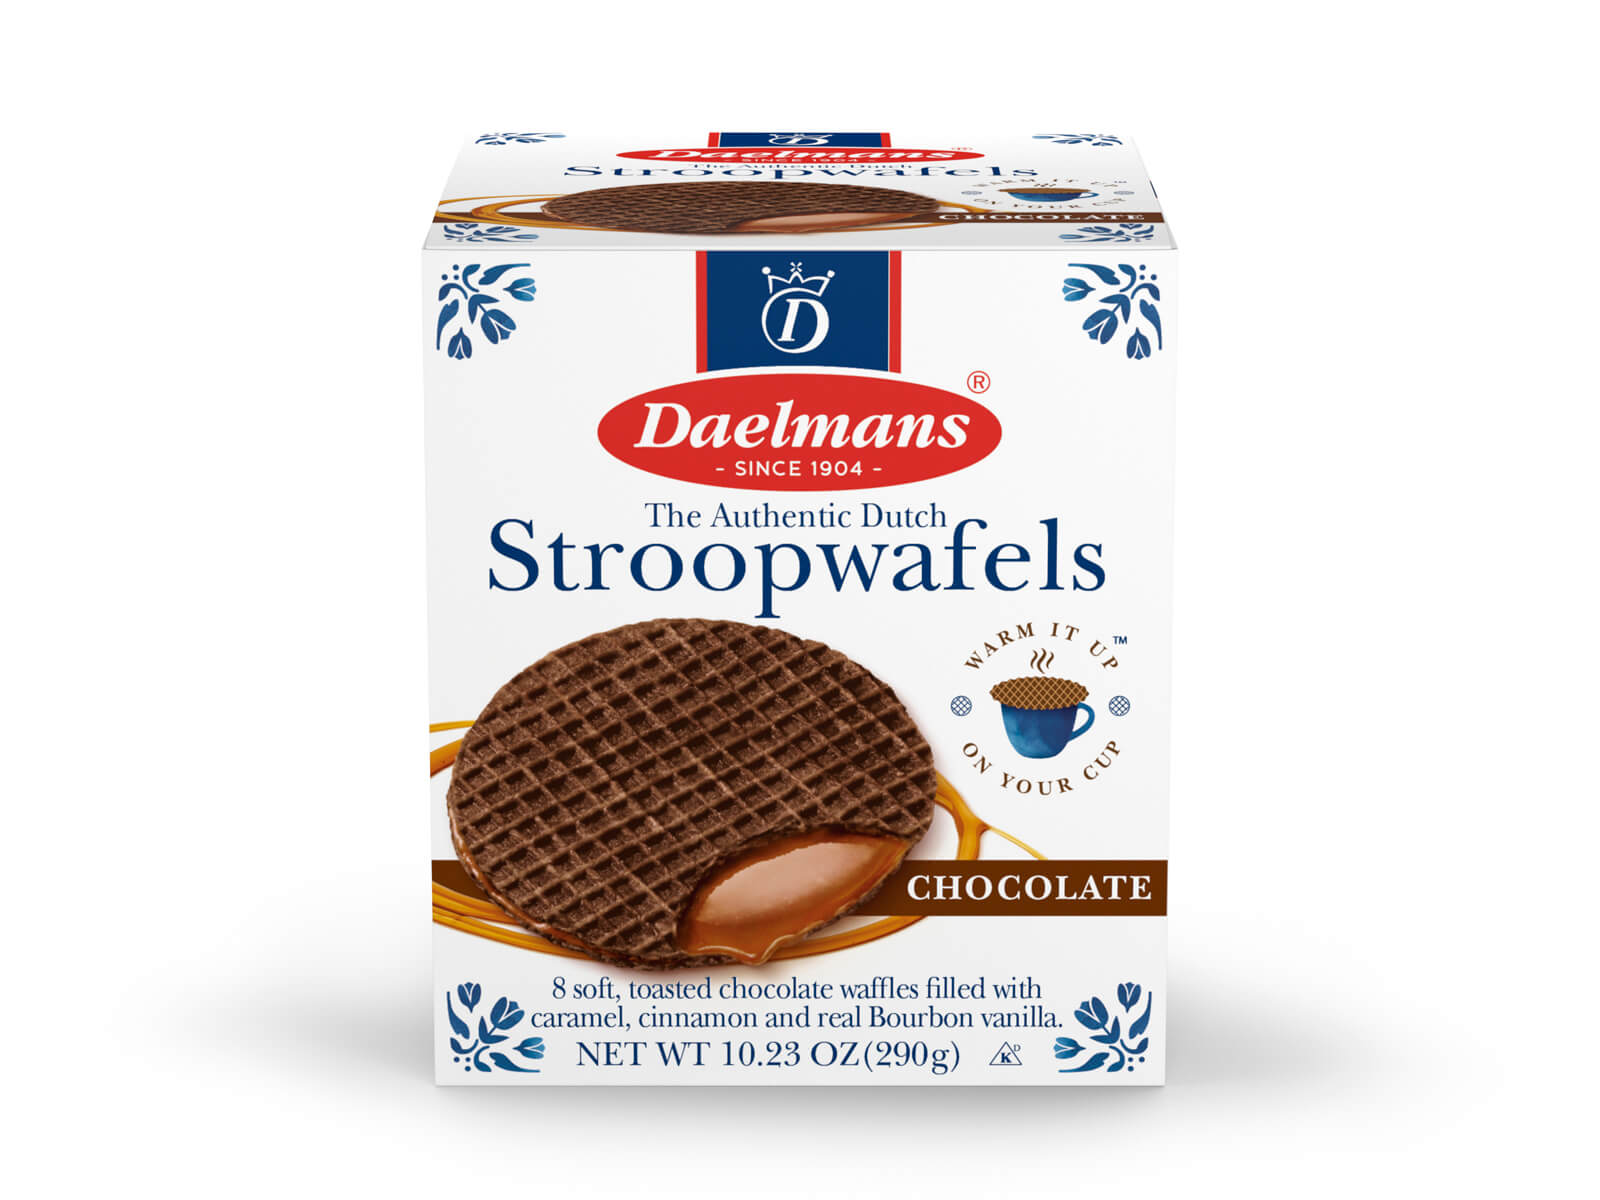 Chocolate Stroopwafels from Daelmans in cube box